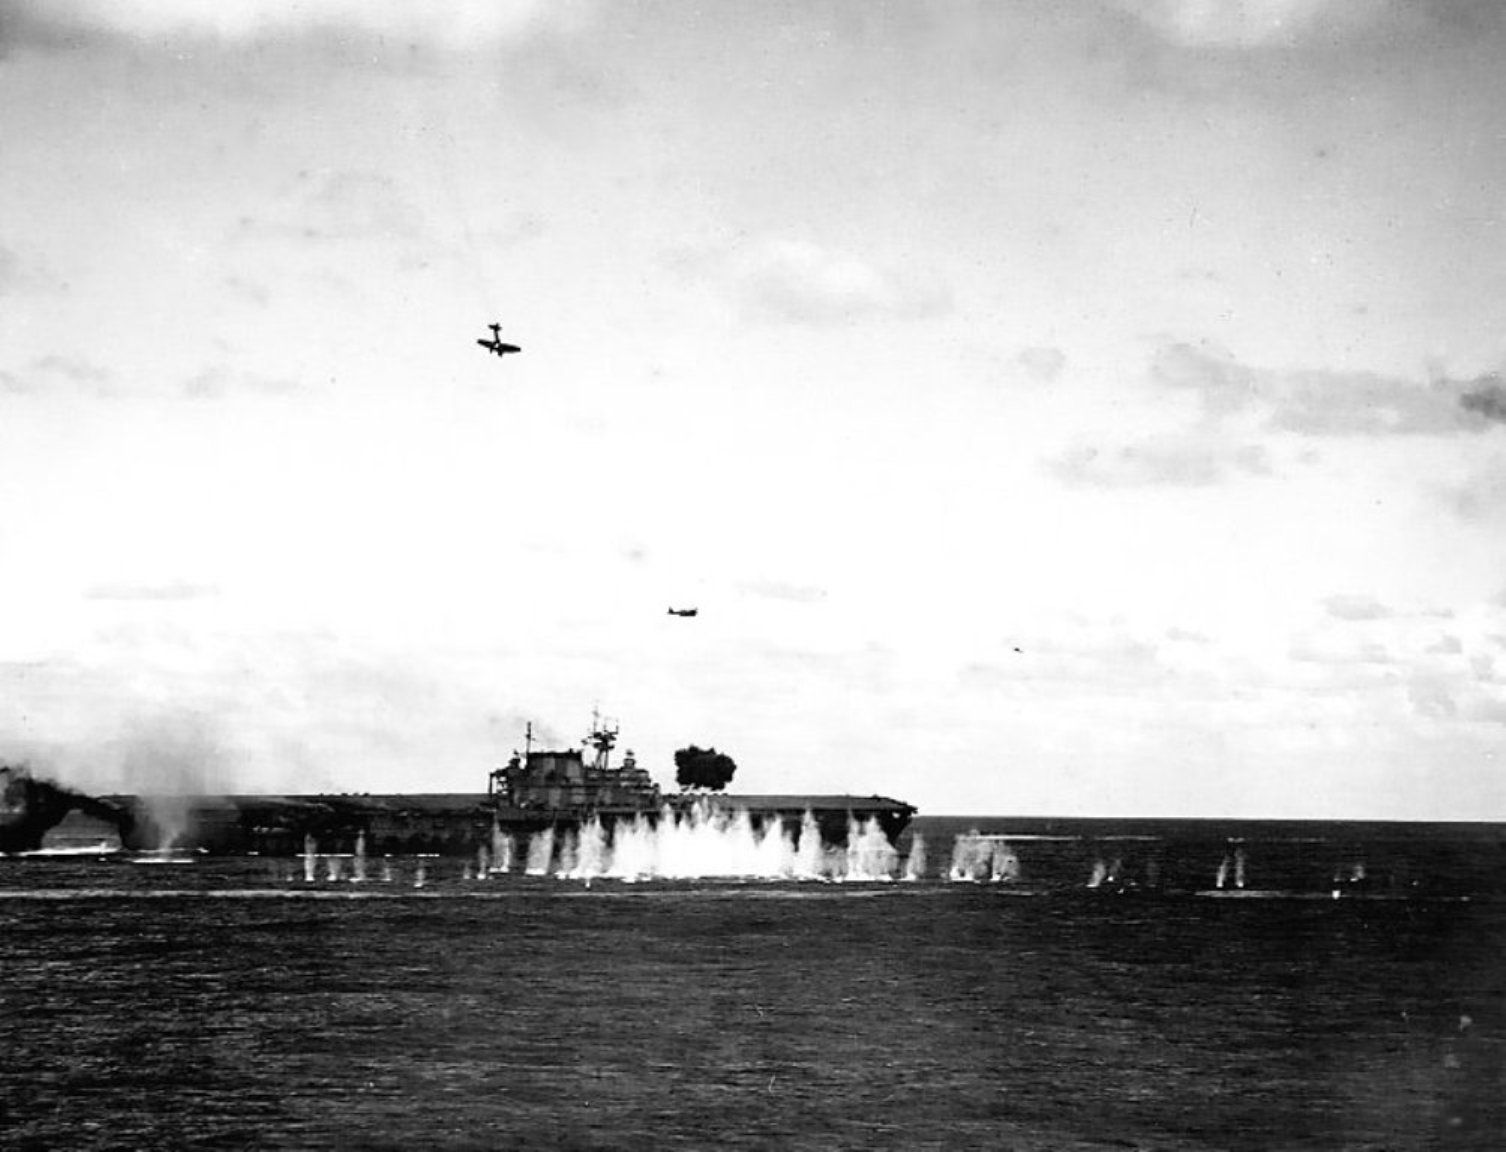 USS Hornet at sea being attacked by Japanese aircraft.